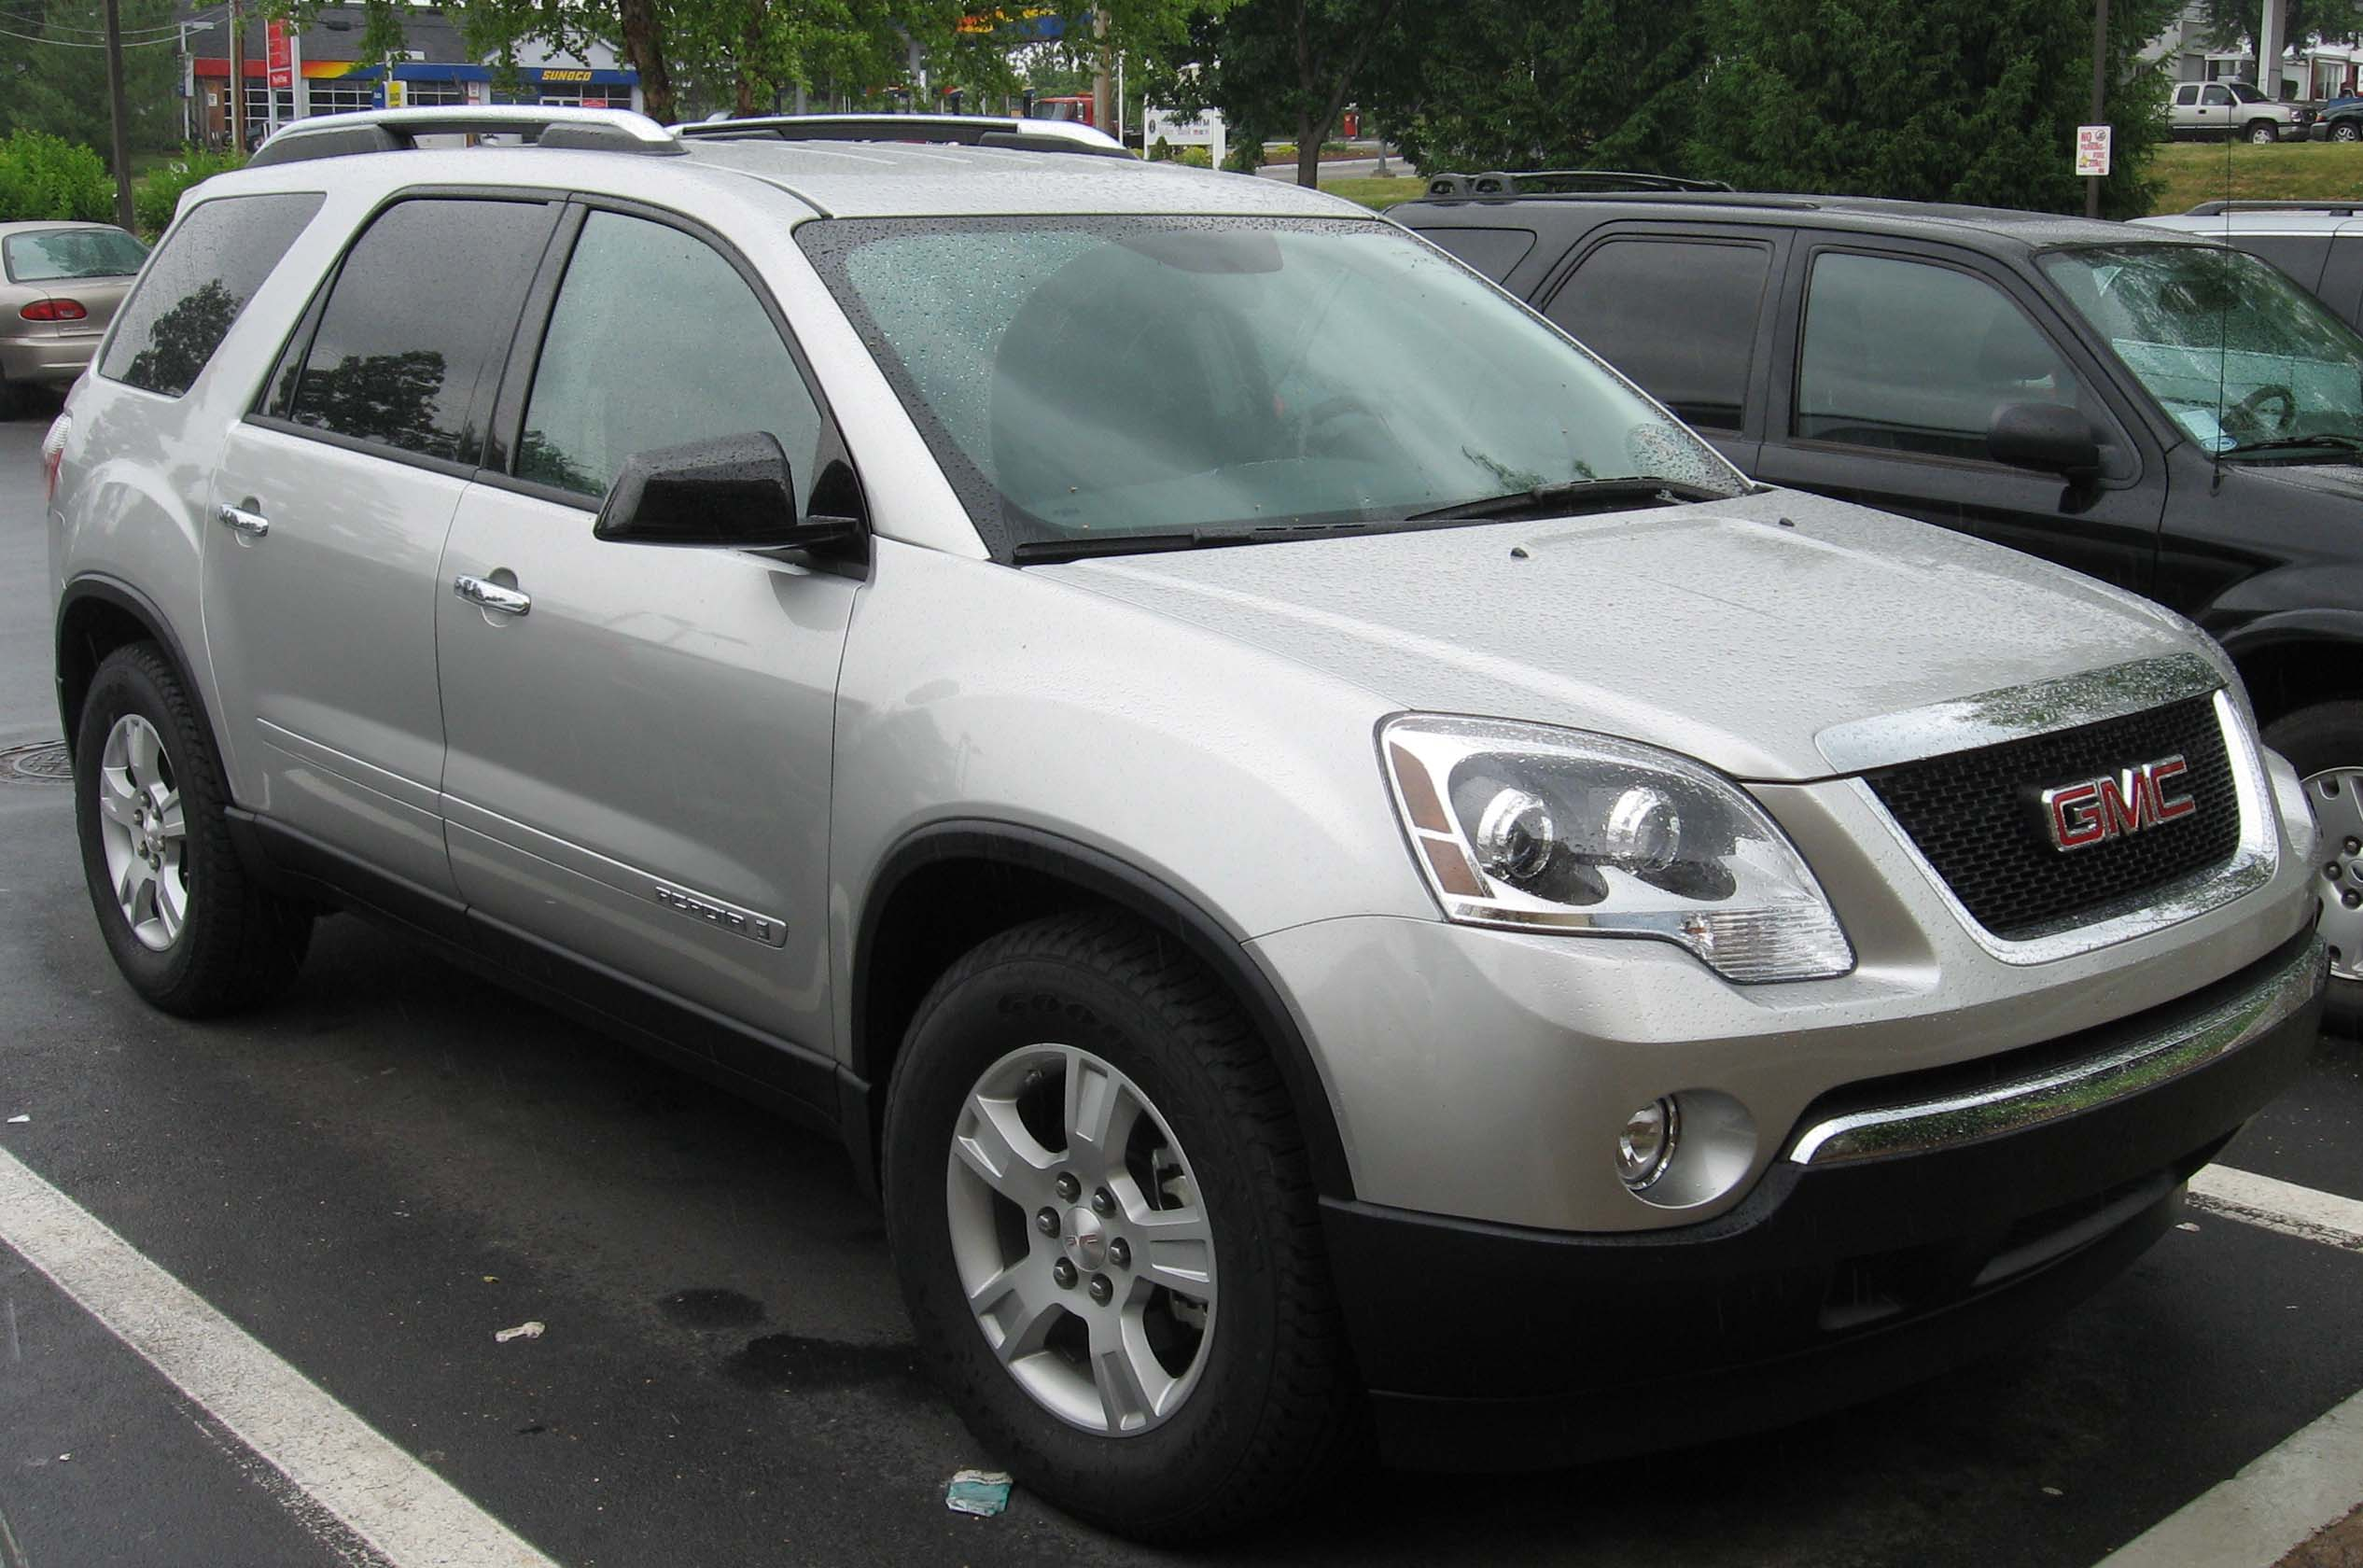 gmc acadia tractor construction plant wiki the classic vehicle and machinery wiki. Black Bedroom Furniture Sets. Home Design Ideas